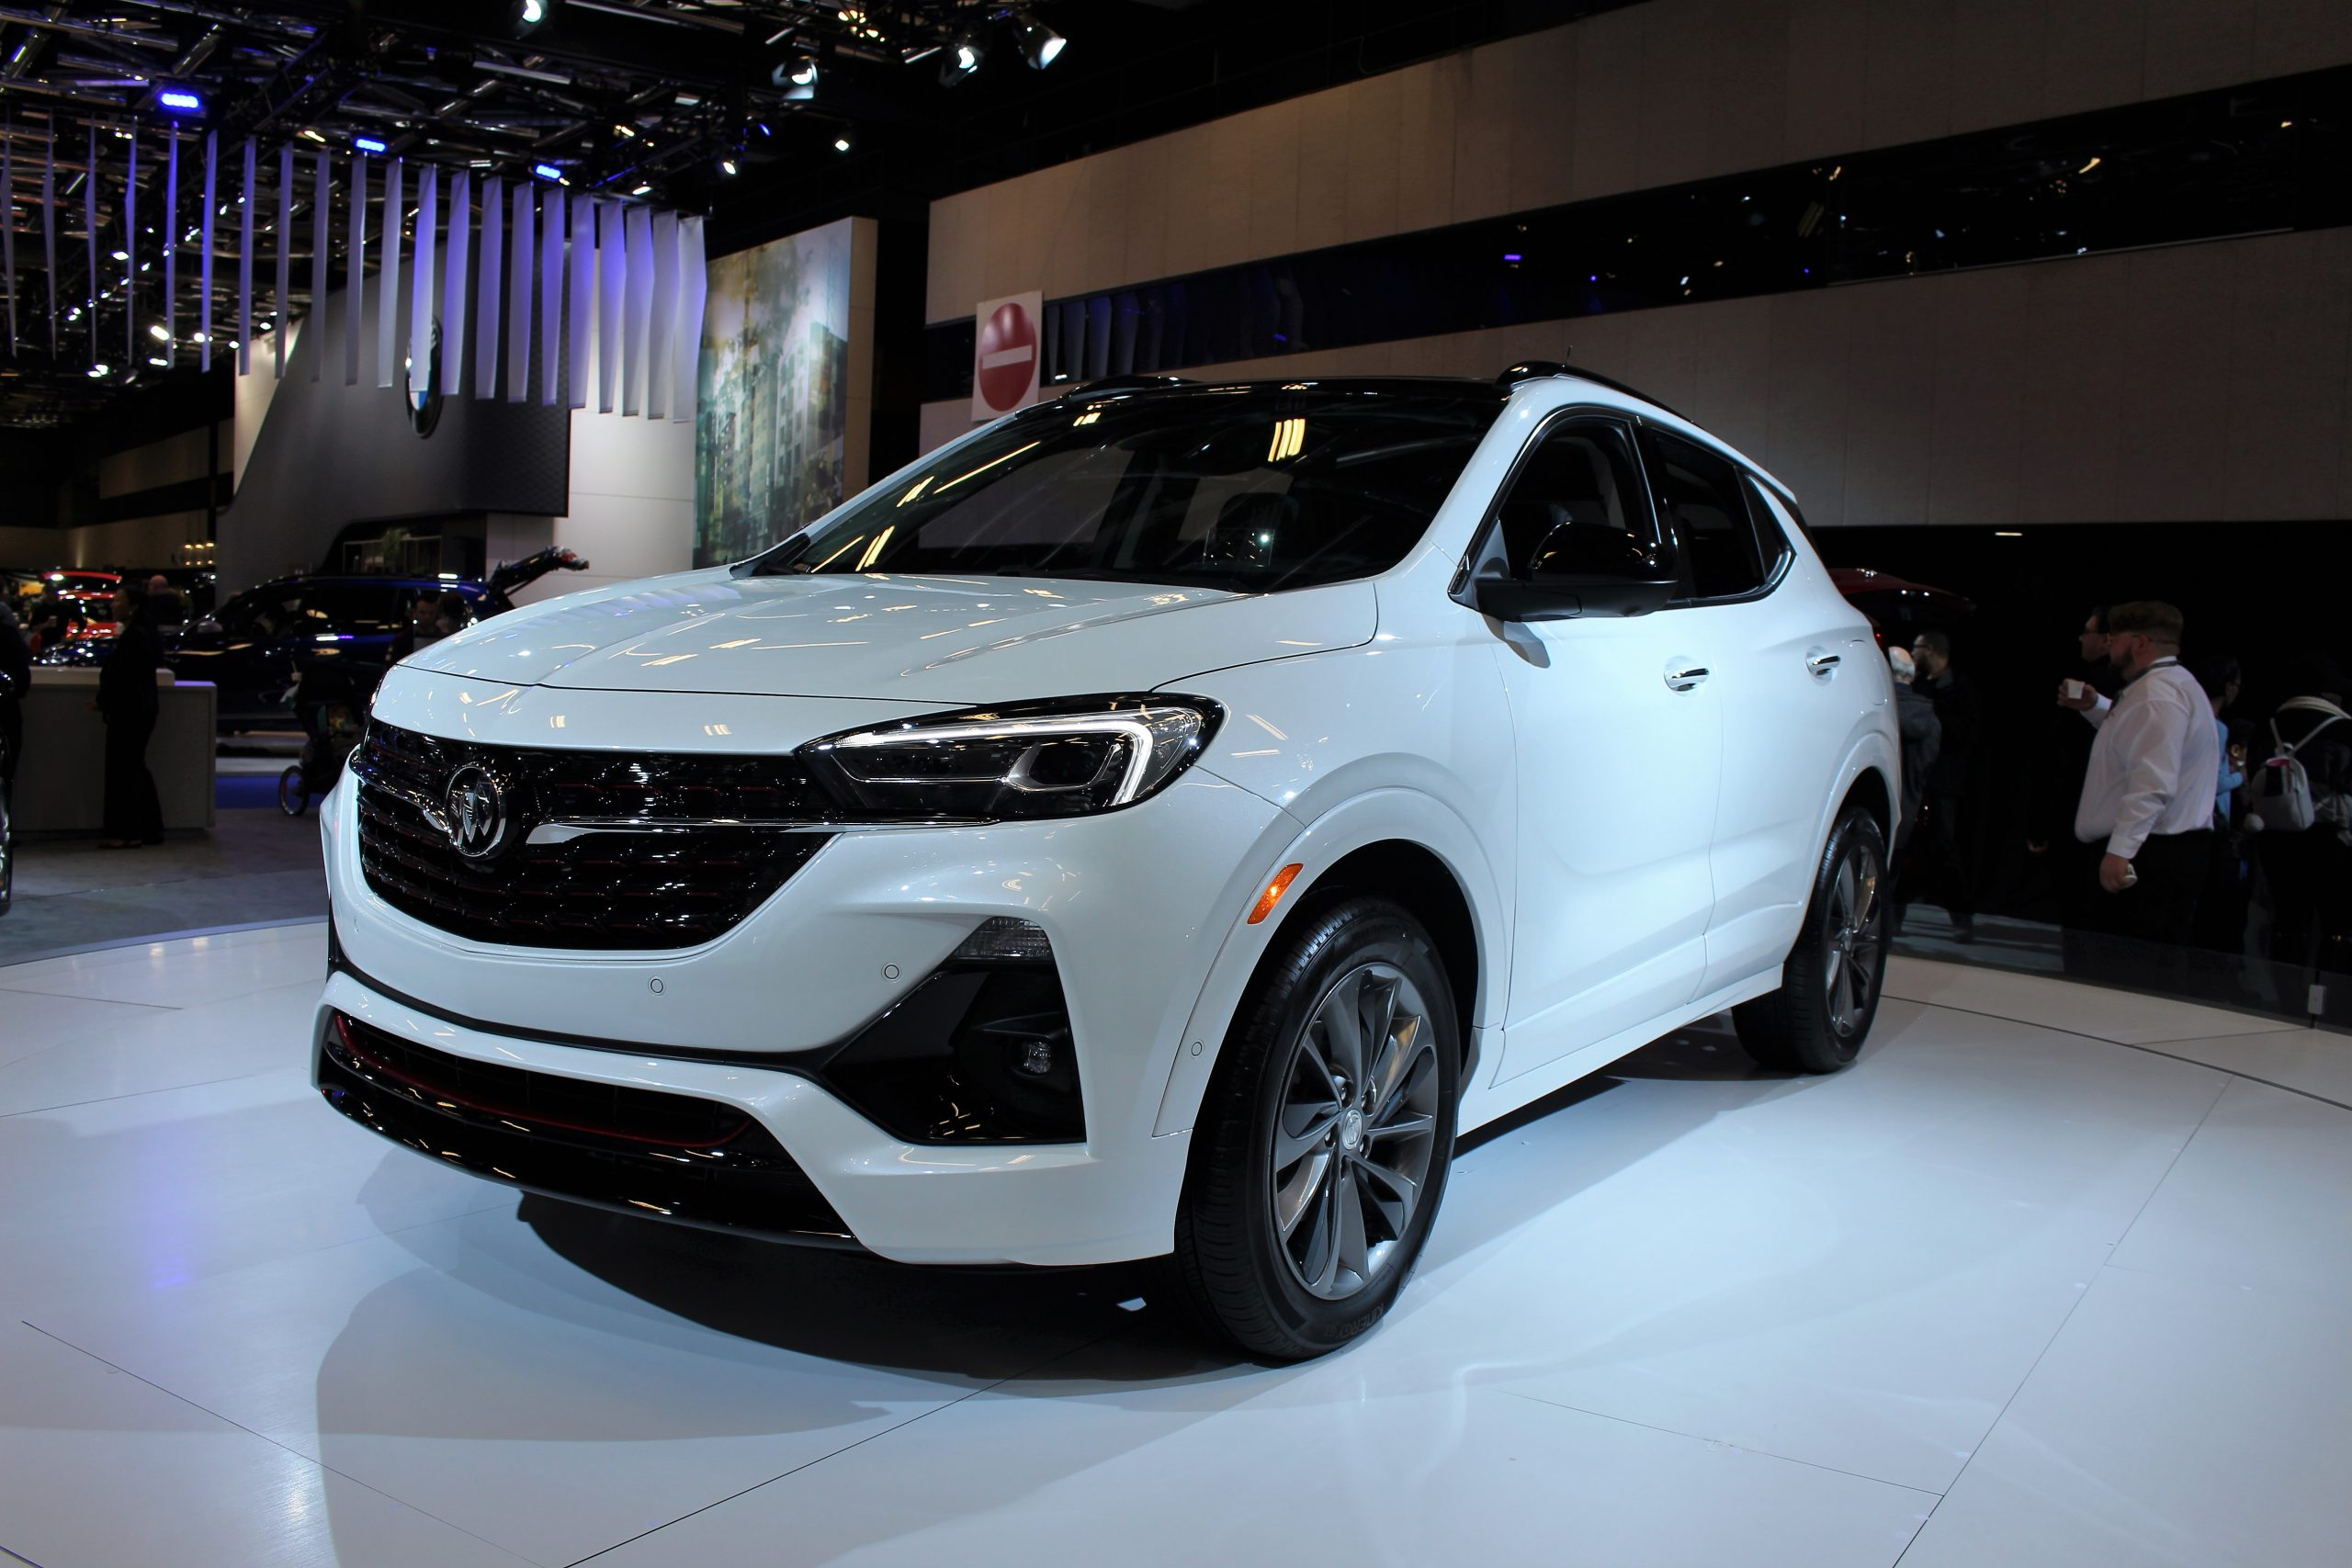 2020 Buick Encore Gx To Start At $26,098 In Canada - Motor 2022 Buick Encore Engine Options, Features, Incentives